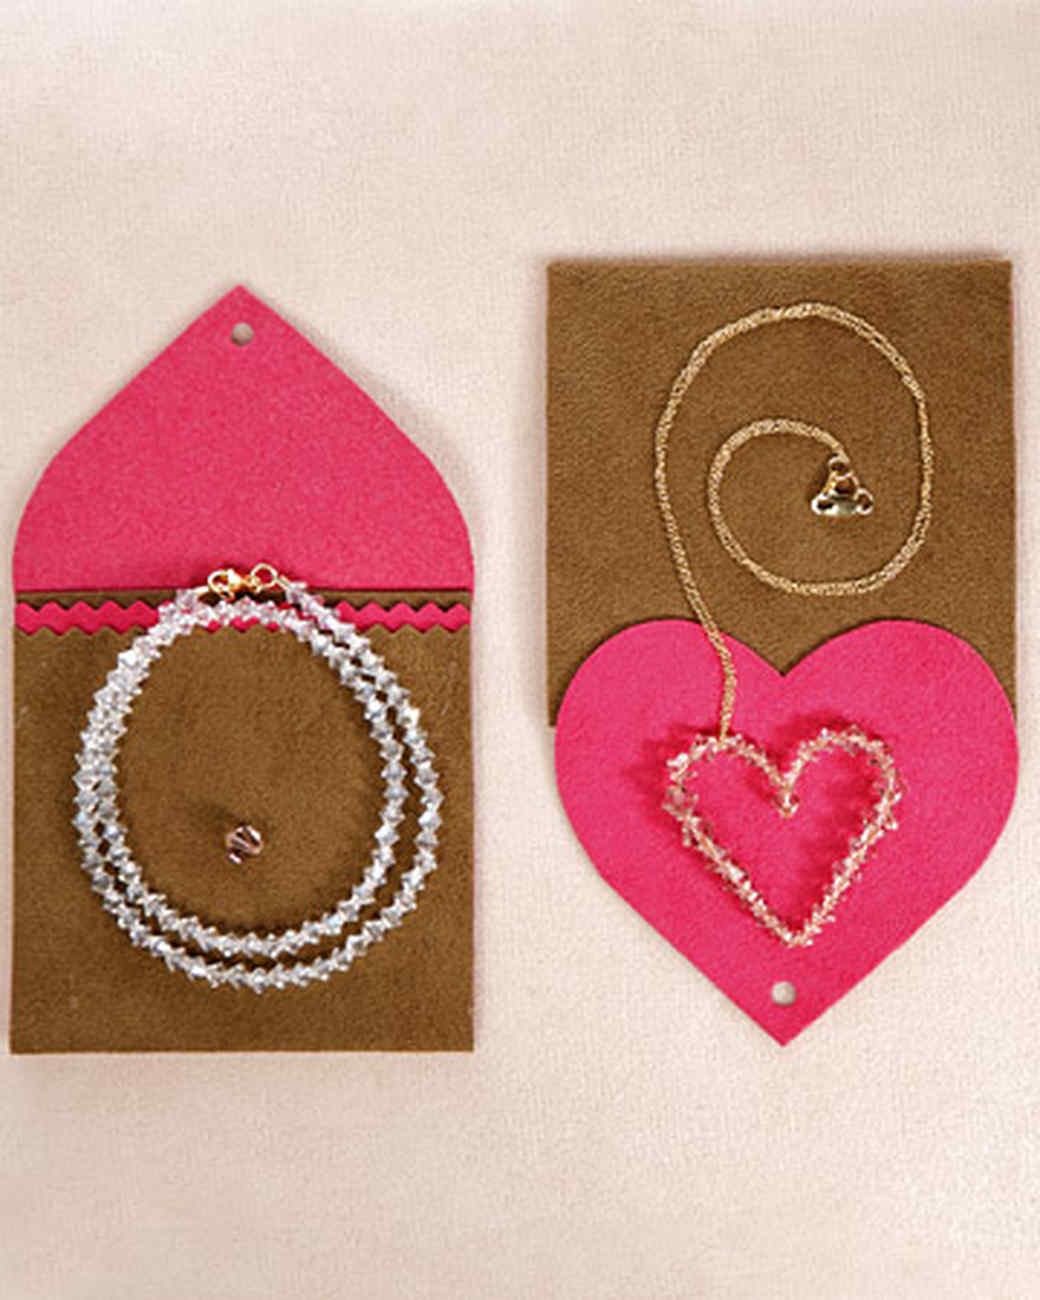 Heart Pendant and Bracelet